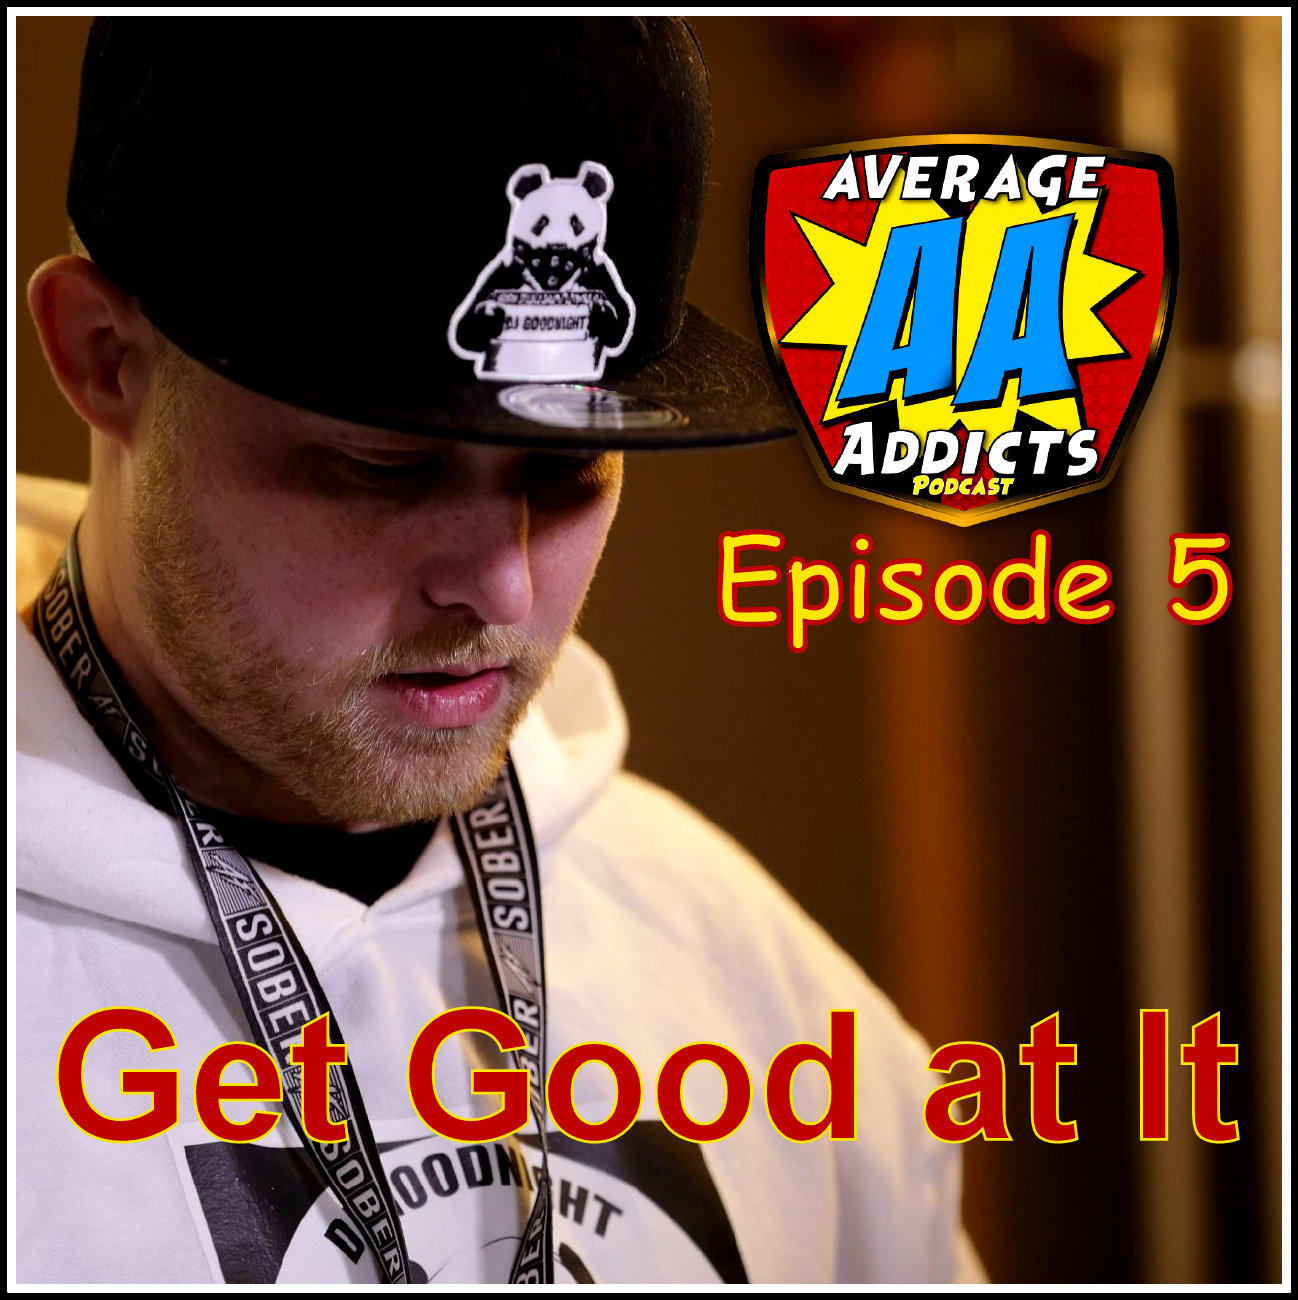 Average Addicts Podcast (Ep05): Get Good at It